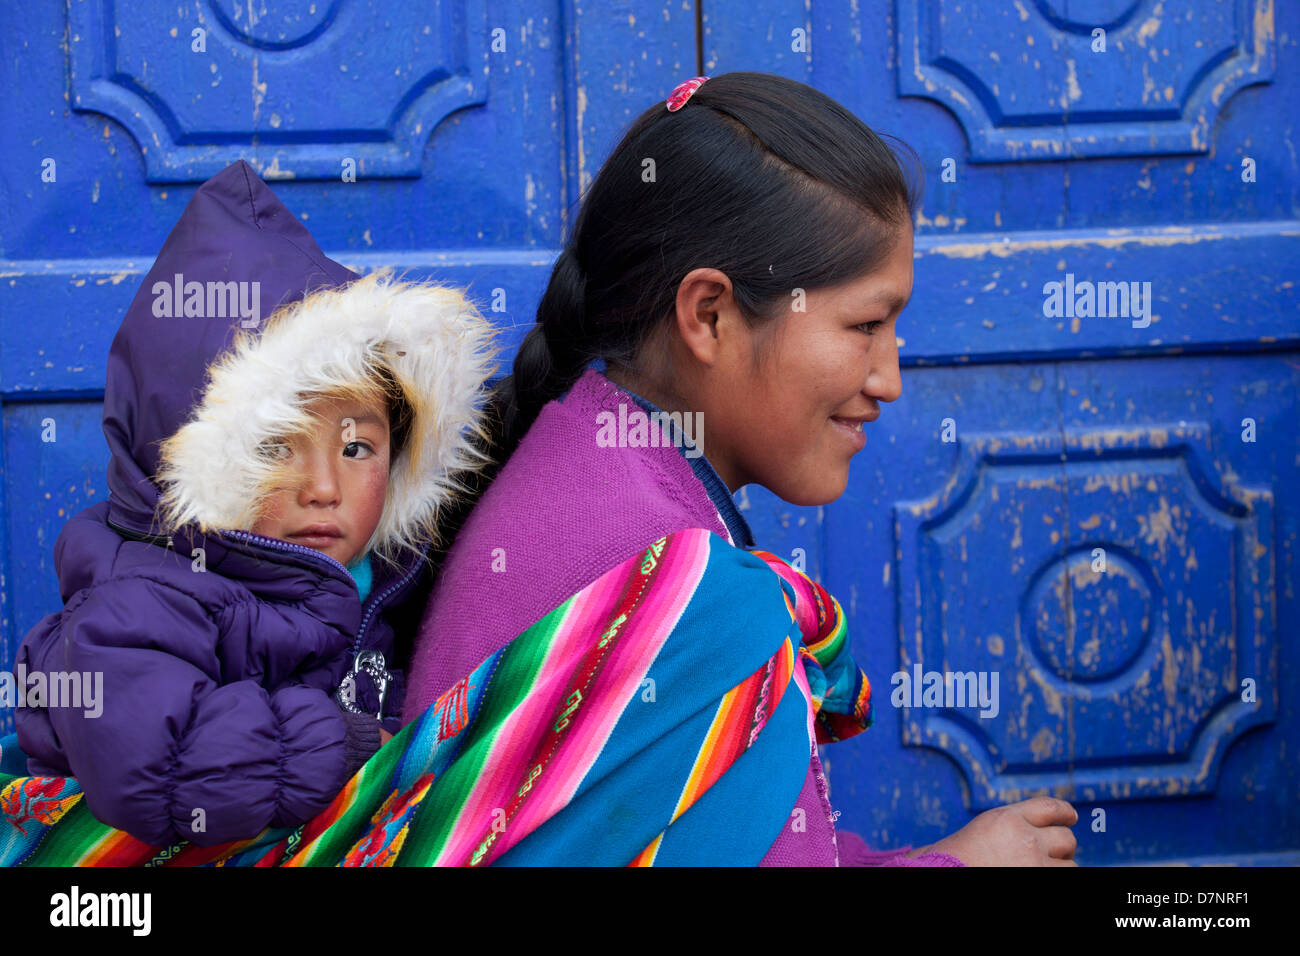 Quechua woman with baby - Stock Image